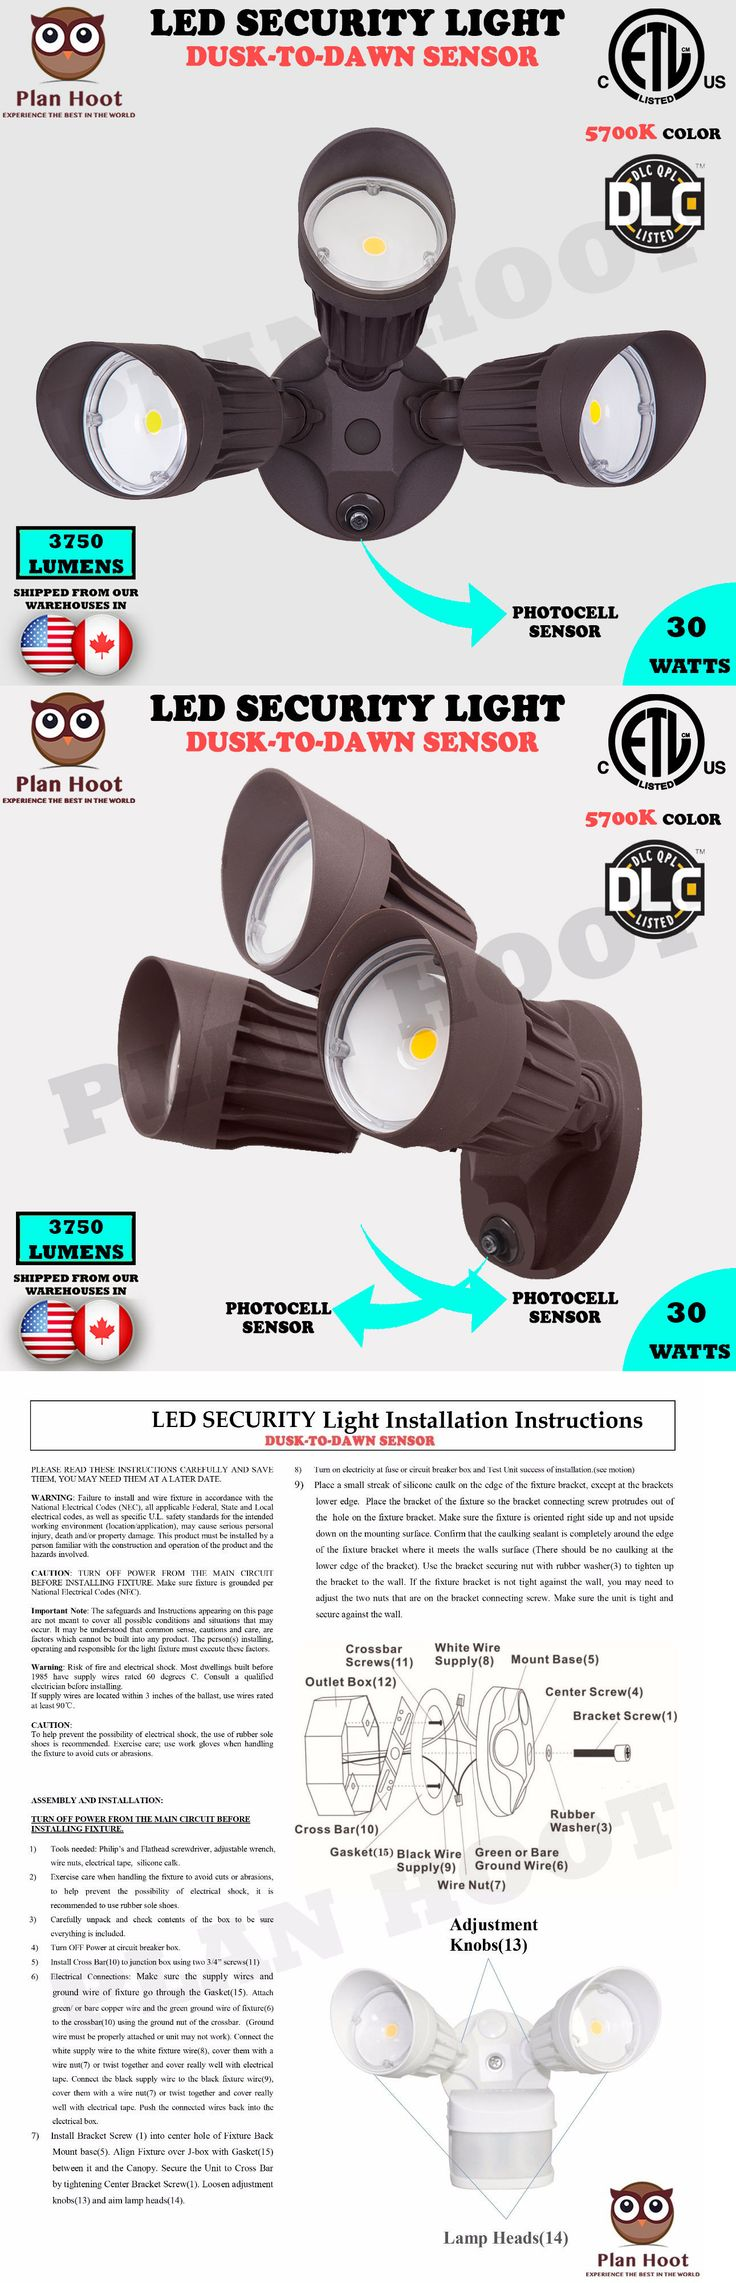 Outdoor Security and Floodlights 183393: 30Wt Bronze 3-Headed Dusk-To-Dawn Photocell Etl Dlc Led Outdoor Security Light -> BUY IT NOW ONLY: $59.99 on eBay!